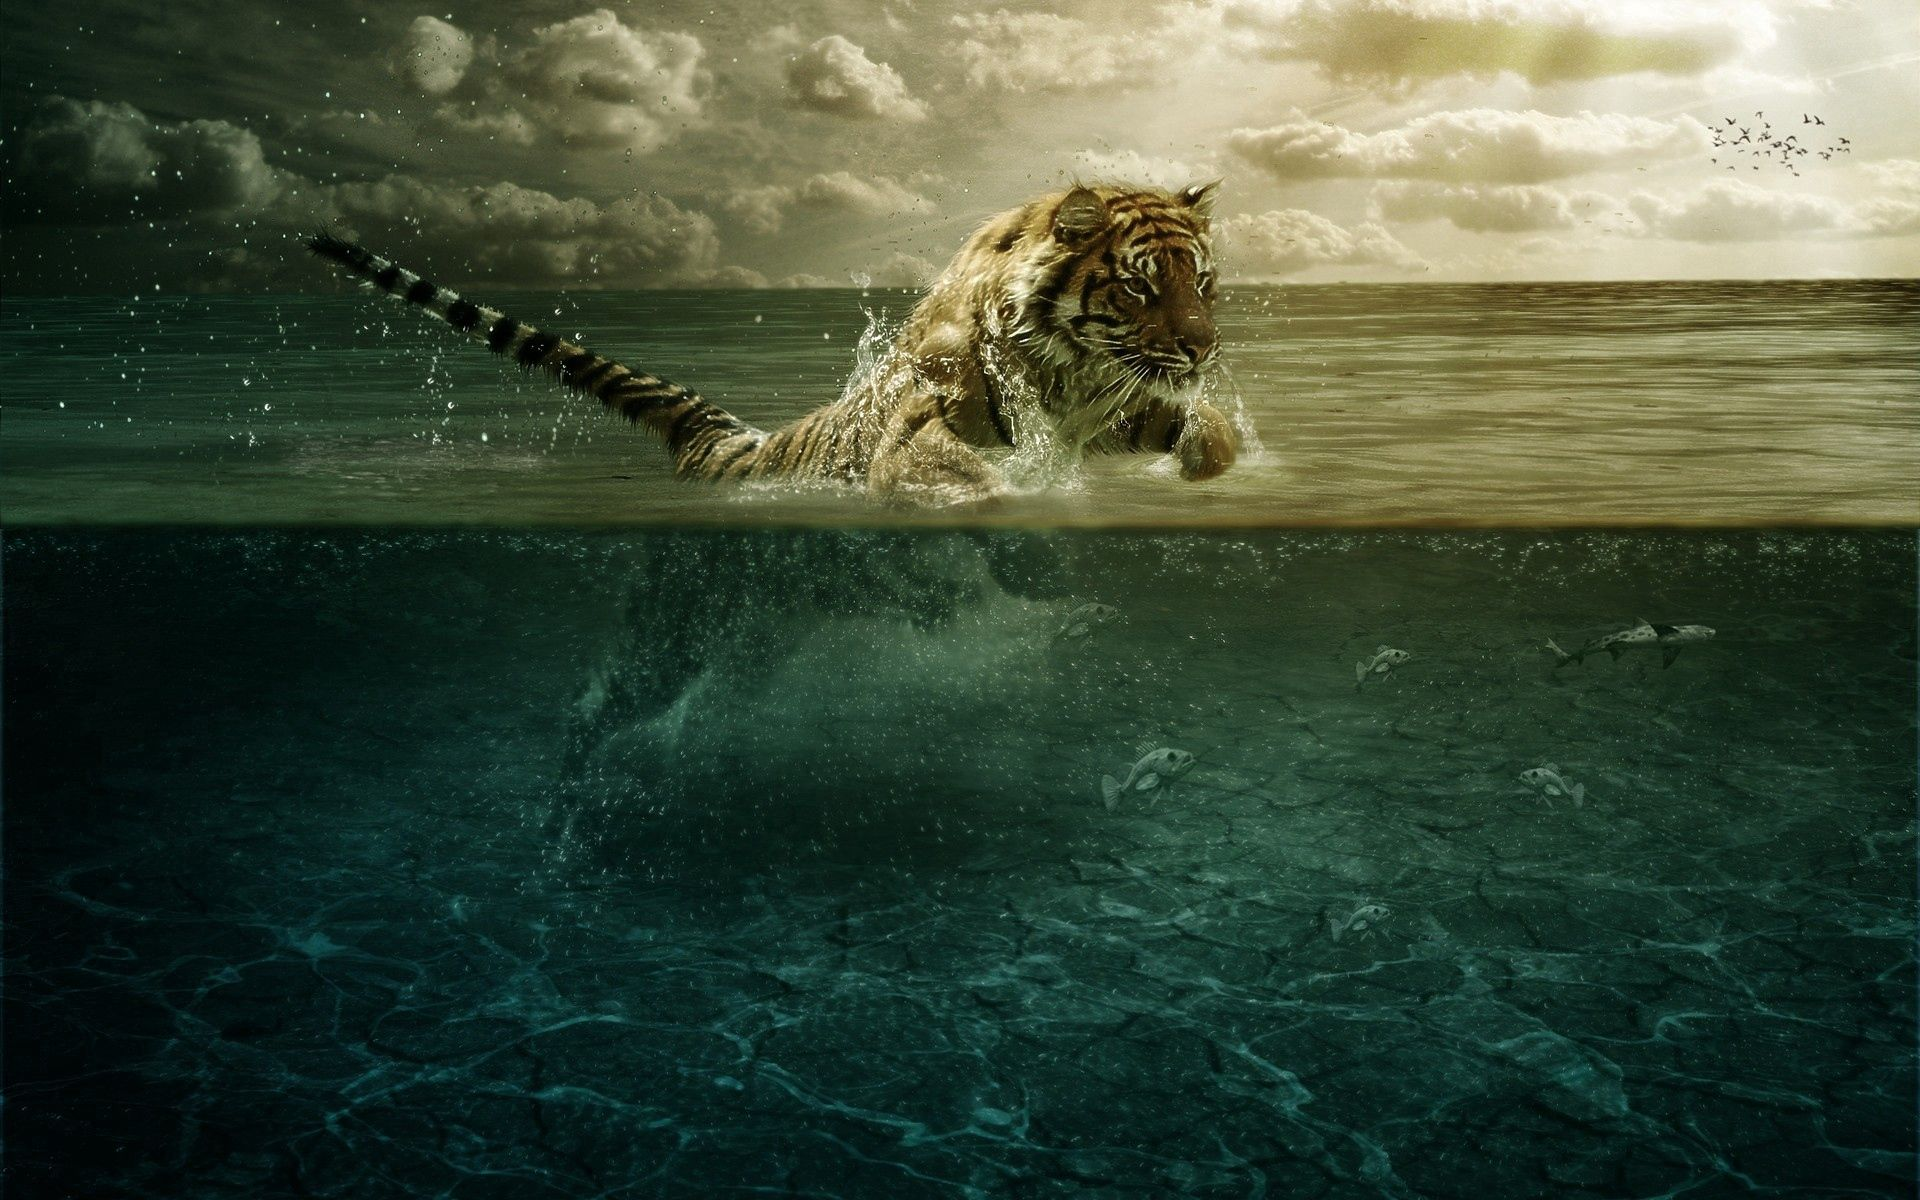 117972 download wallpaper Animals, Tiger, Bounce, Jump, Sea, Under Water, Underwater, Hunting, Hunt screensavers and pictures for free